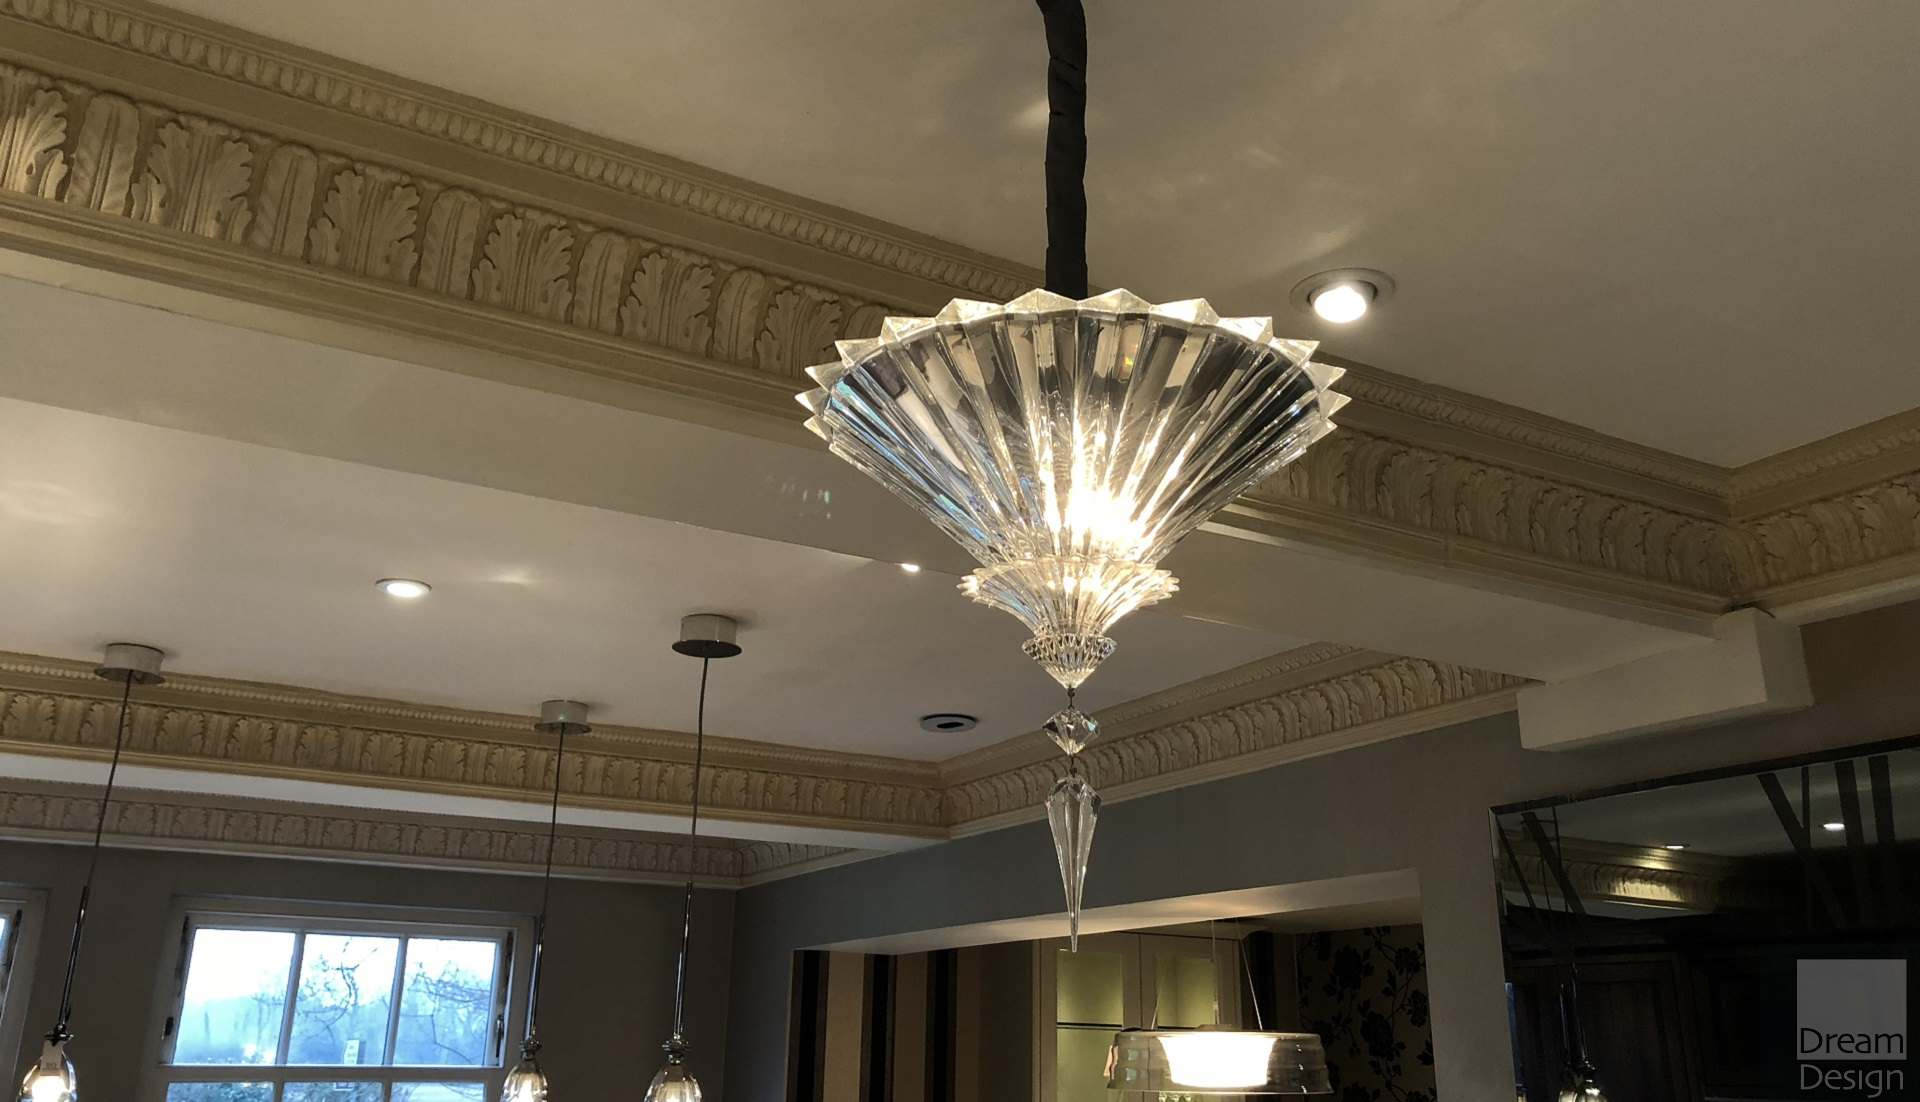 Baccarat Mille Nuits Ceiling Light Ex-Display - Dream Design ...